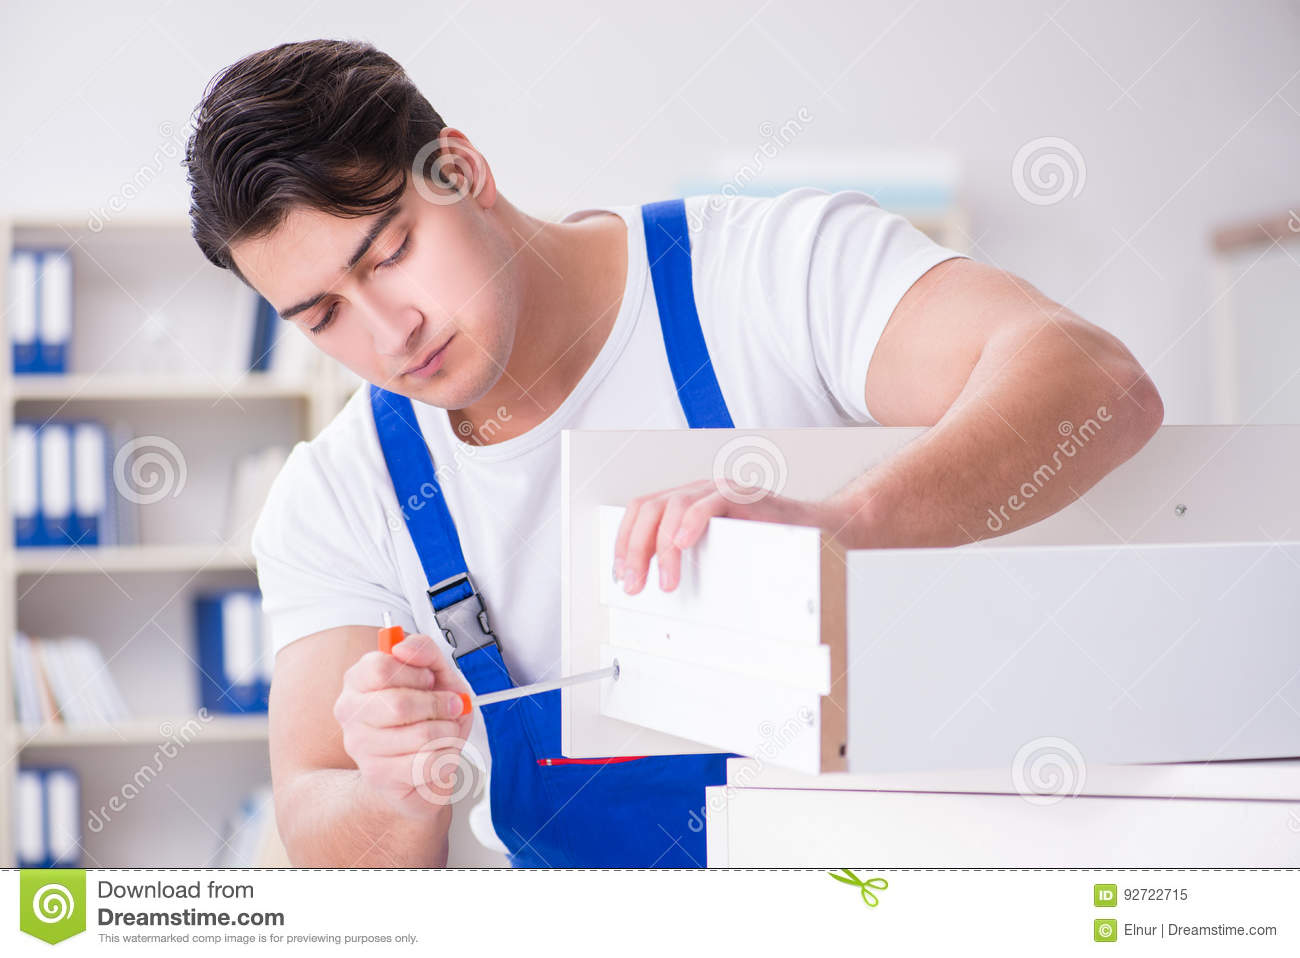 The Furniture Repair And Assembly Concept Royalty Free Stock Photo 93113169